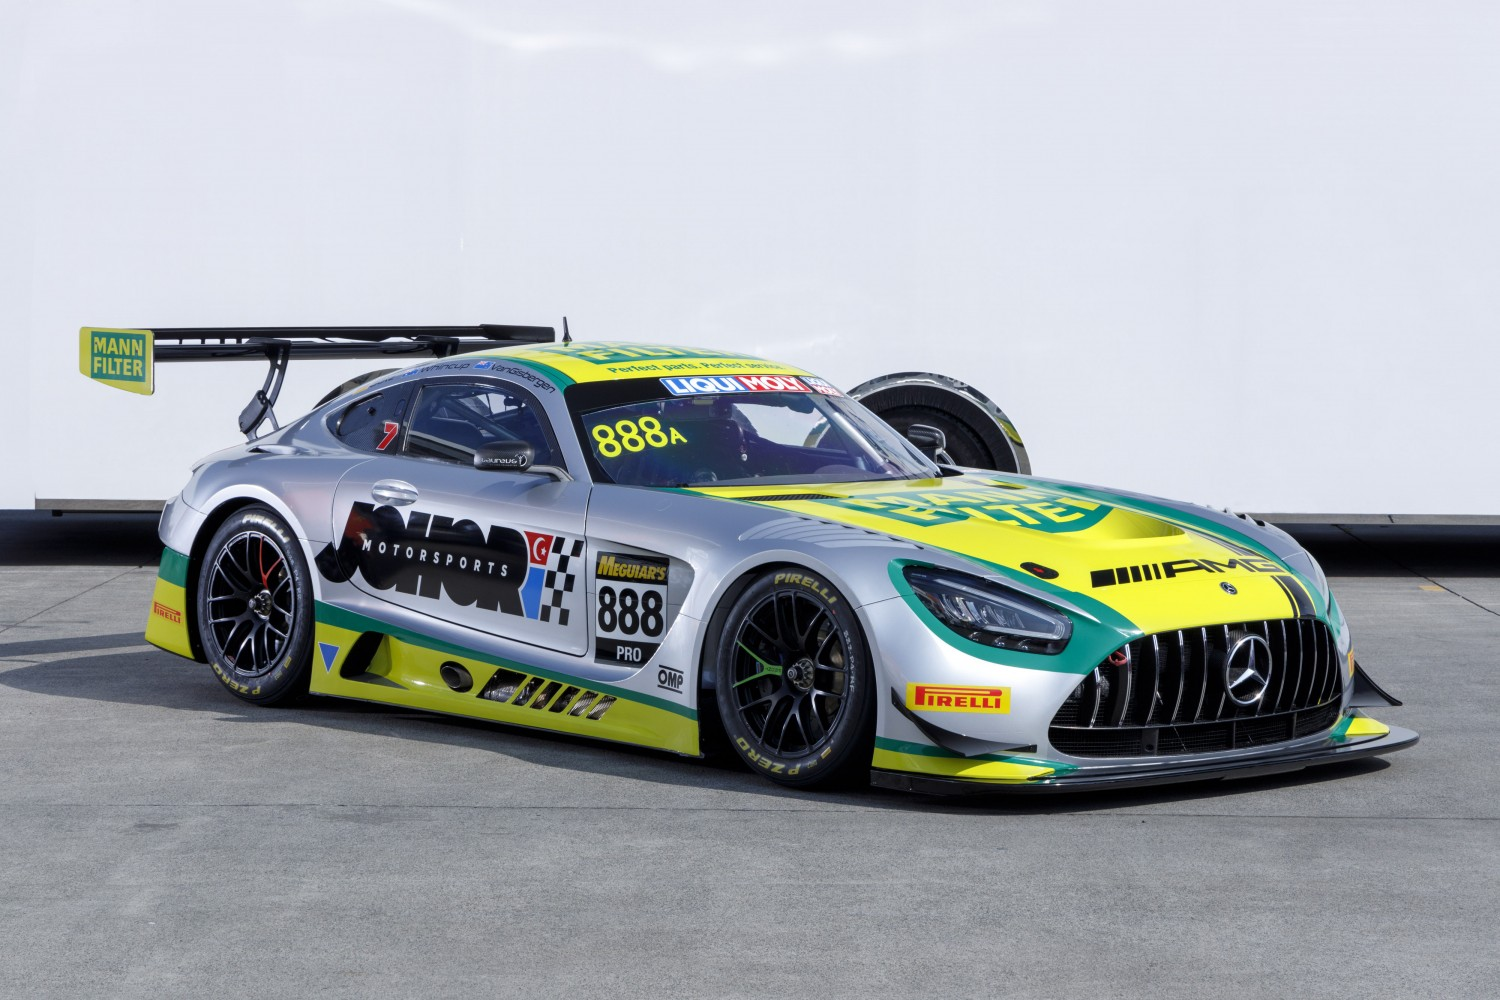 Mercedes-AMG confirms Intercontinental GT Challenge Powered by Pirelli entry